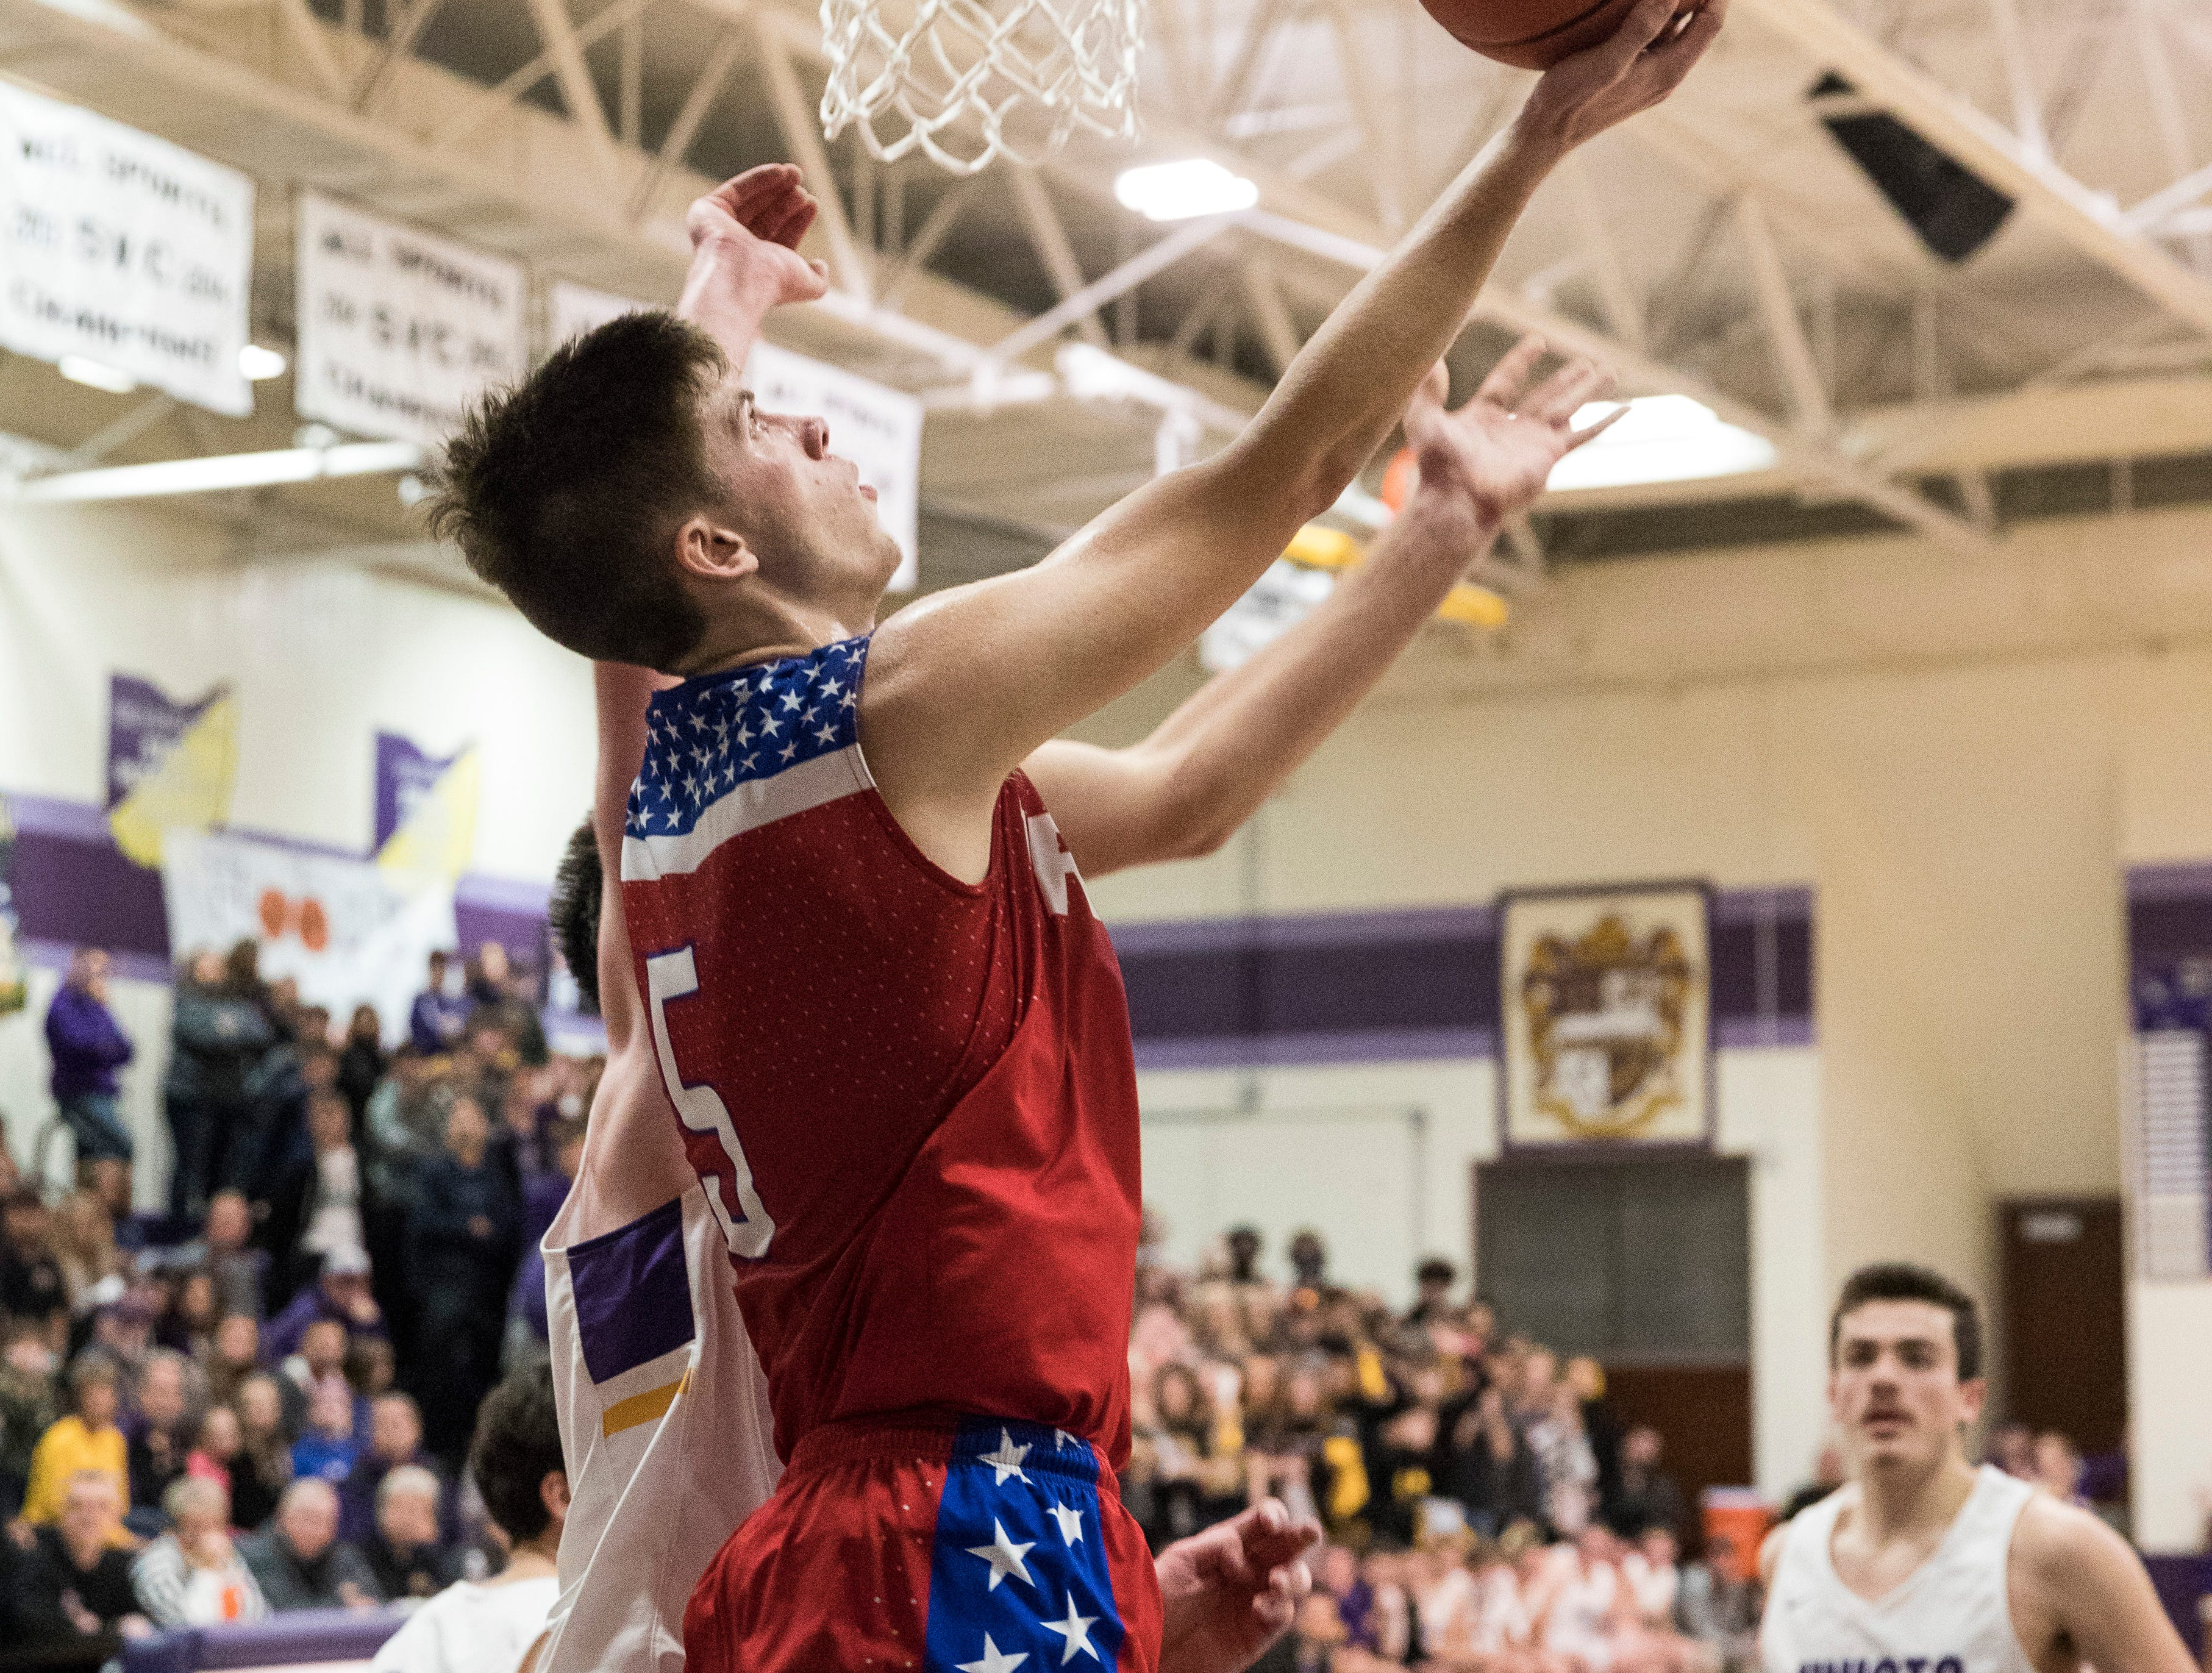 Zane Trace forward Nick Nesser goes for two over Unioto during the last quarter at Unioto High School. The Pioneers defeated the Sherman 69-50, breaking their historic SVC winning streak.